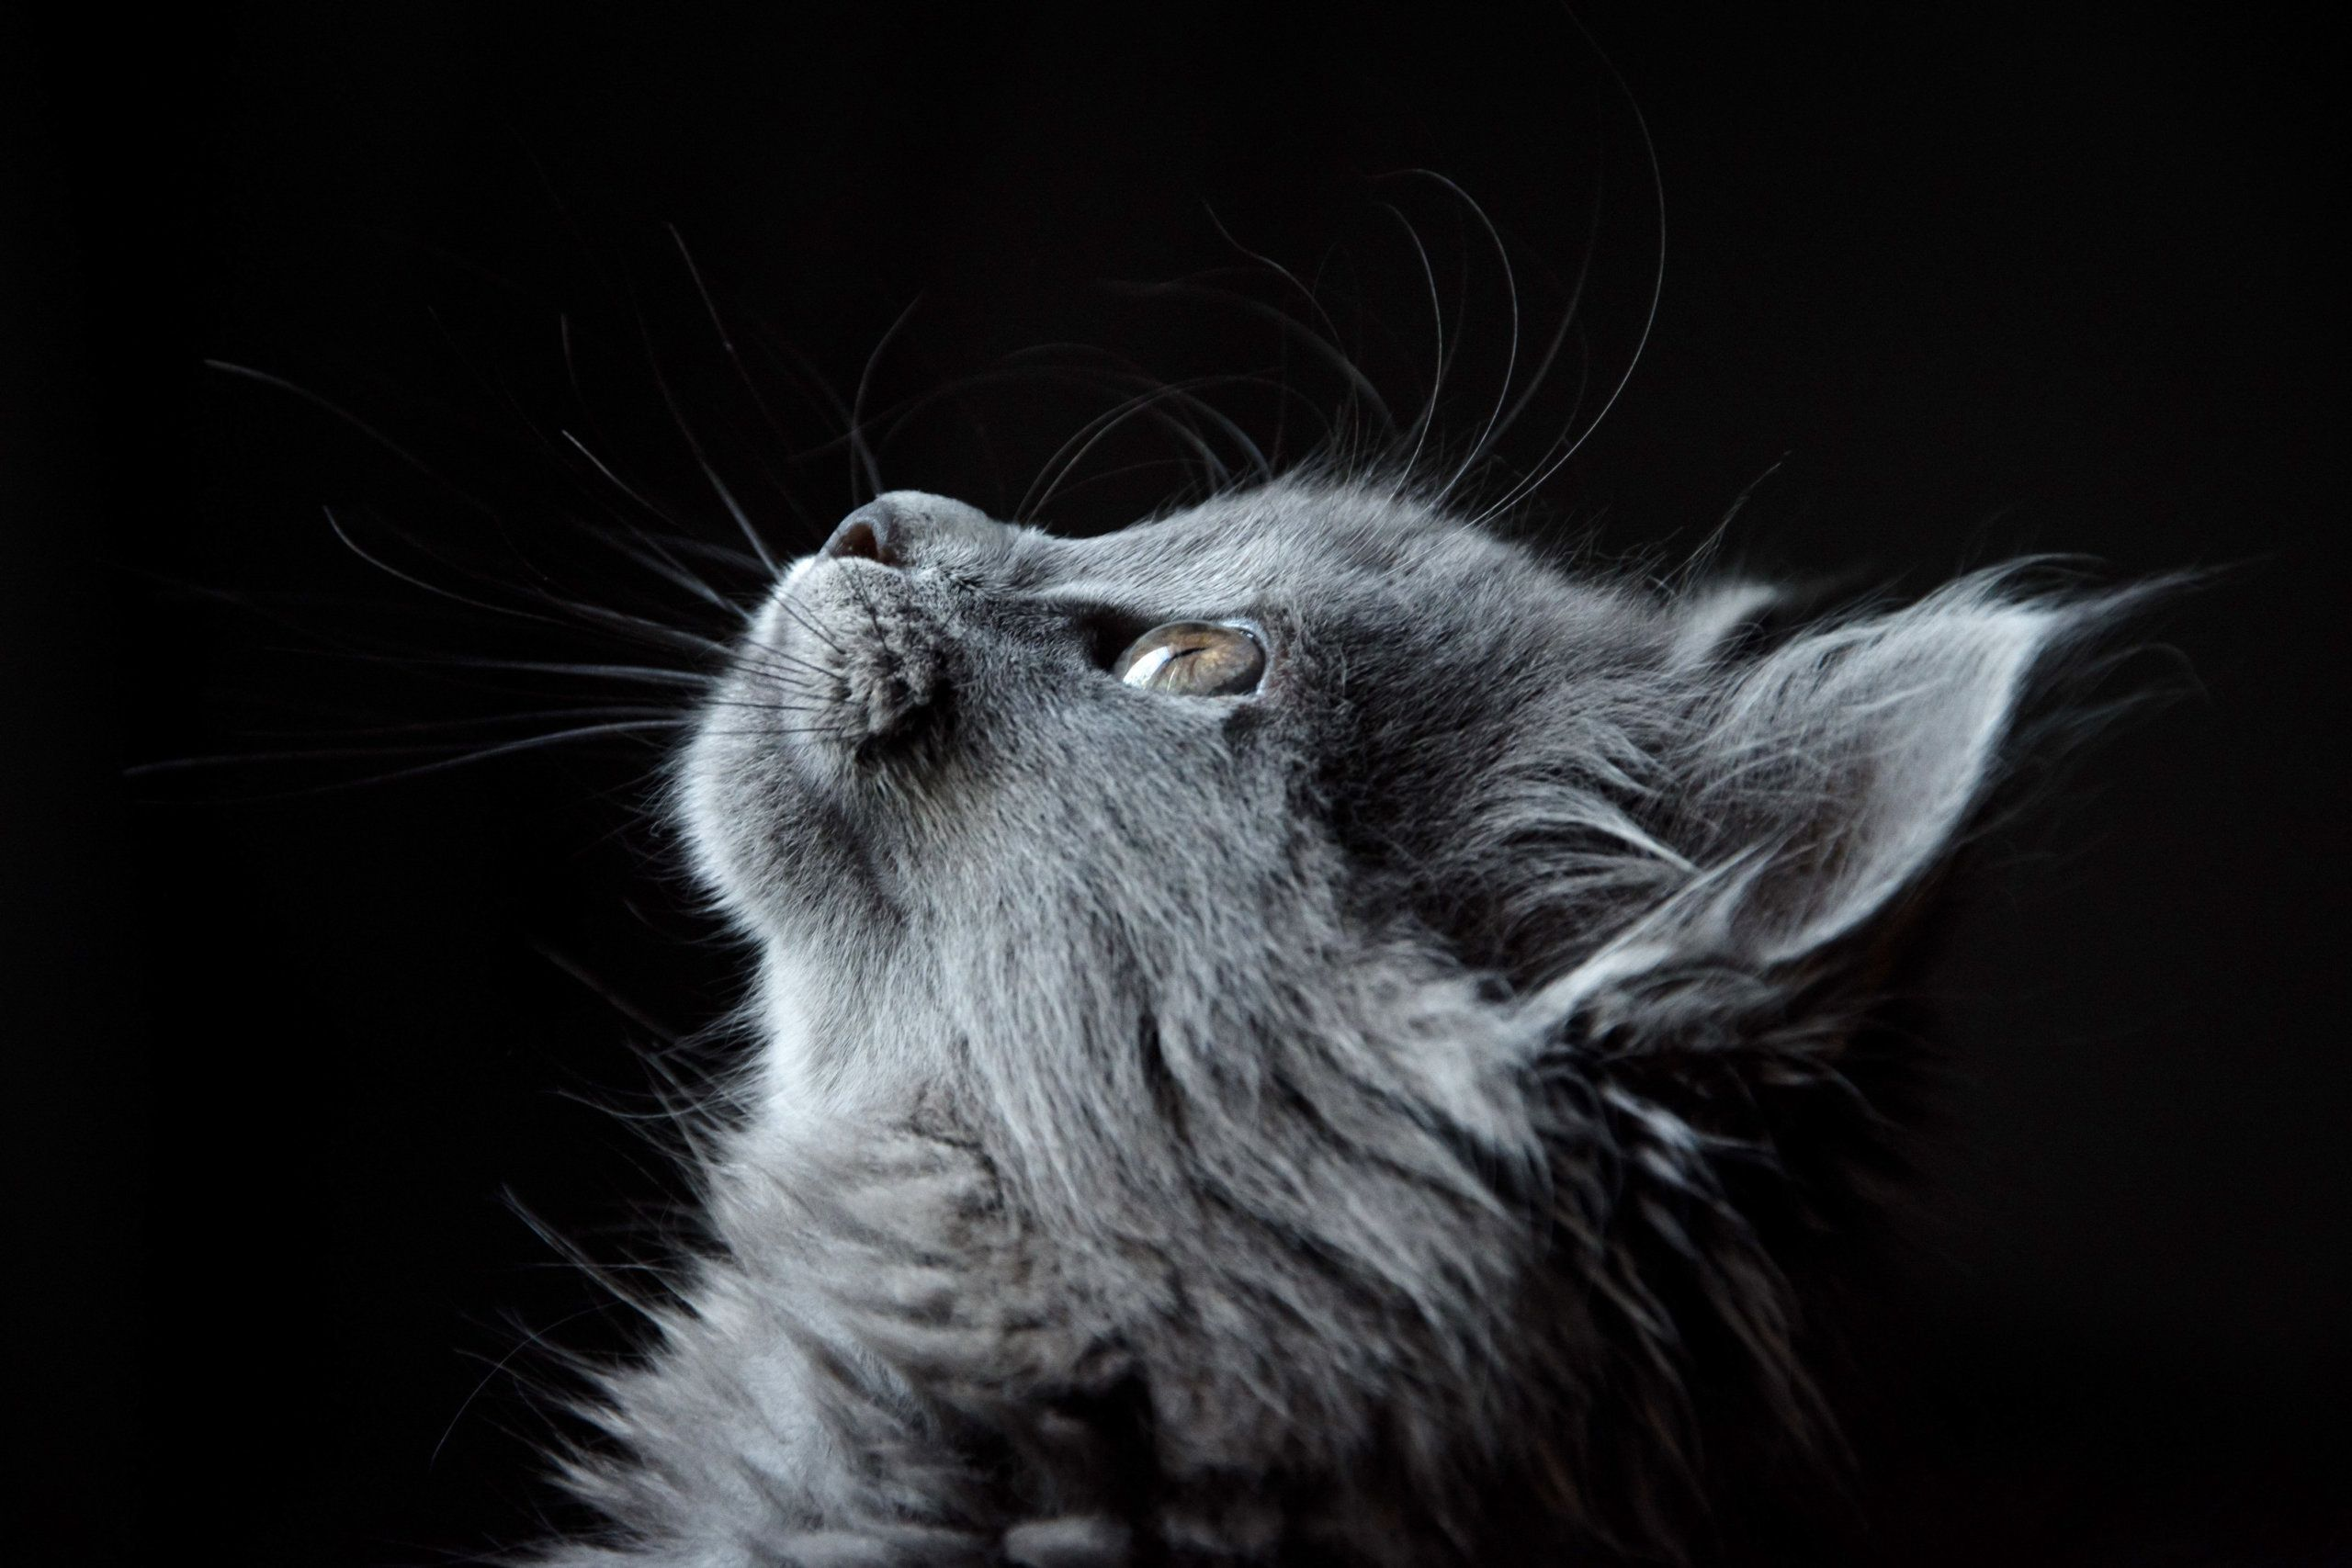 Free Animals Photos Amazing Cat Picture Grey Kitten Looking For Hope Black Background Wallpaper Animal Eyes Animals Petanos Animals Funny Cats Cat Breeds Grey Kitten